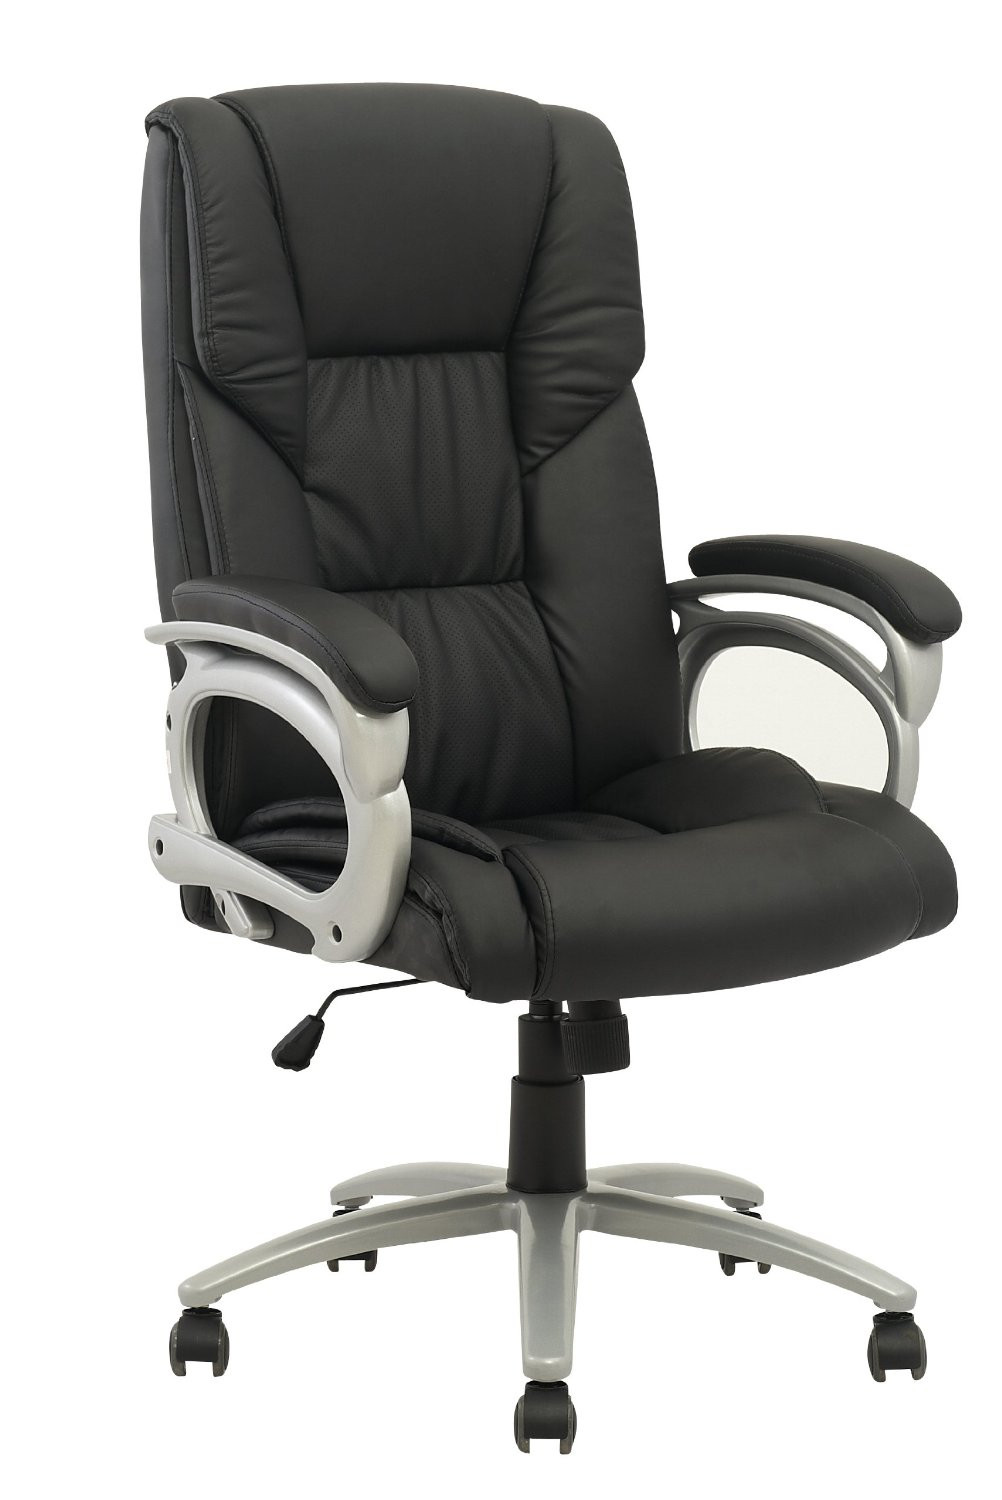 Best ideas about Best Home Office Chair . Save or Pin Best Bud fice Chairs for Your Healthy and fy Now.